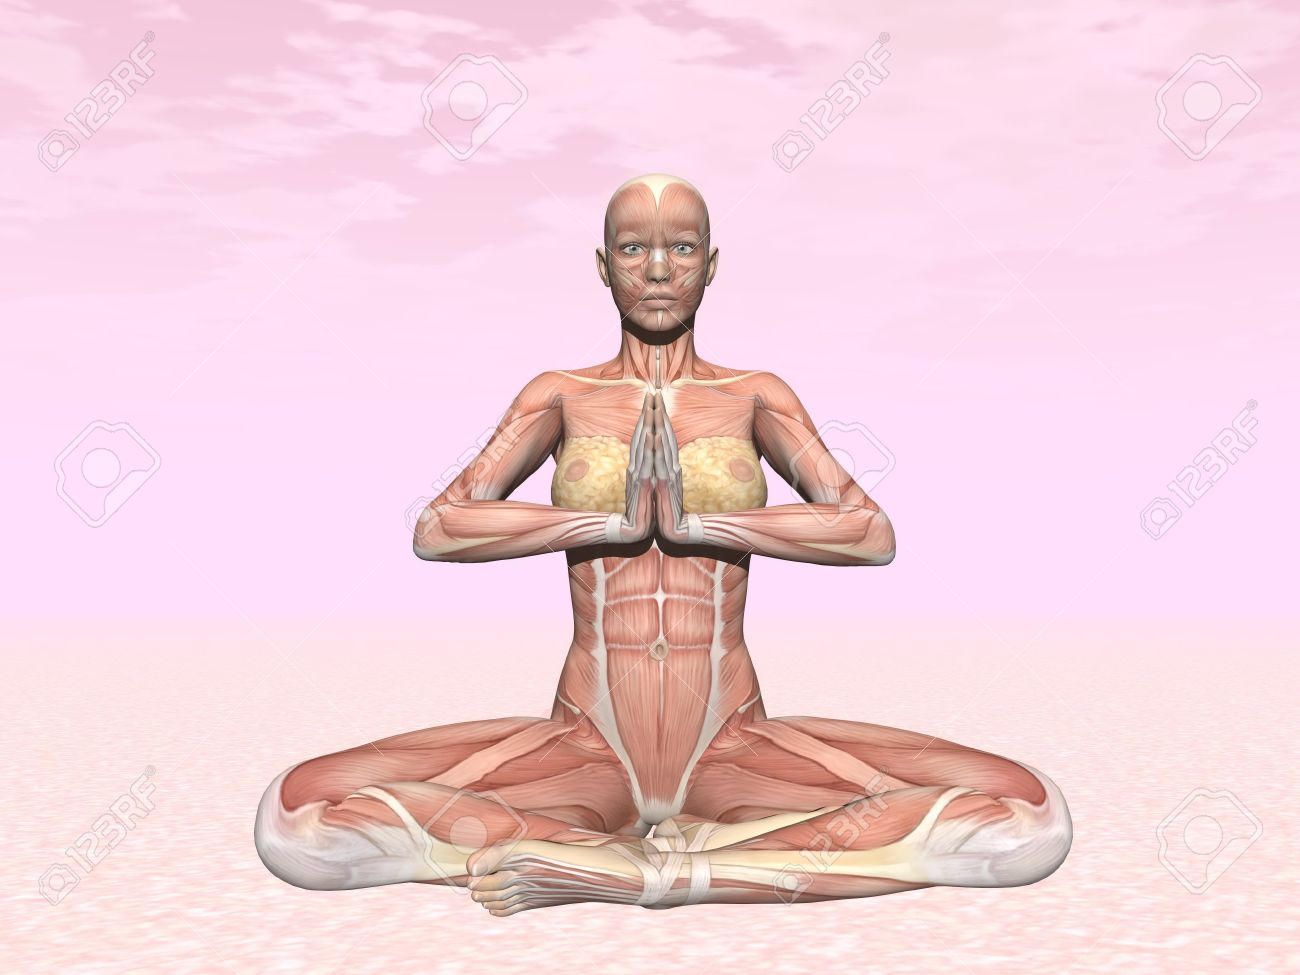 Meditation yoga pose for woman with muscle visible in pink background Stock Photo - 26355864